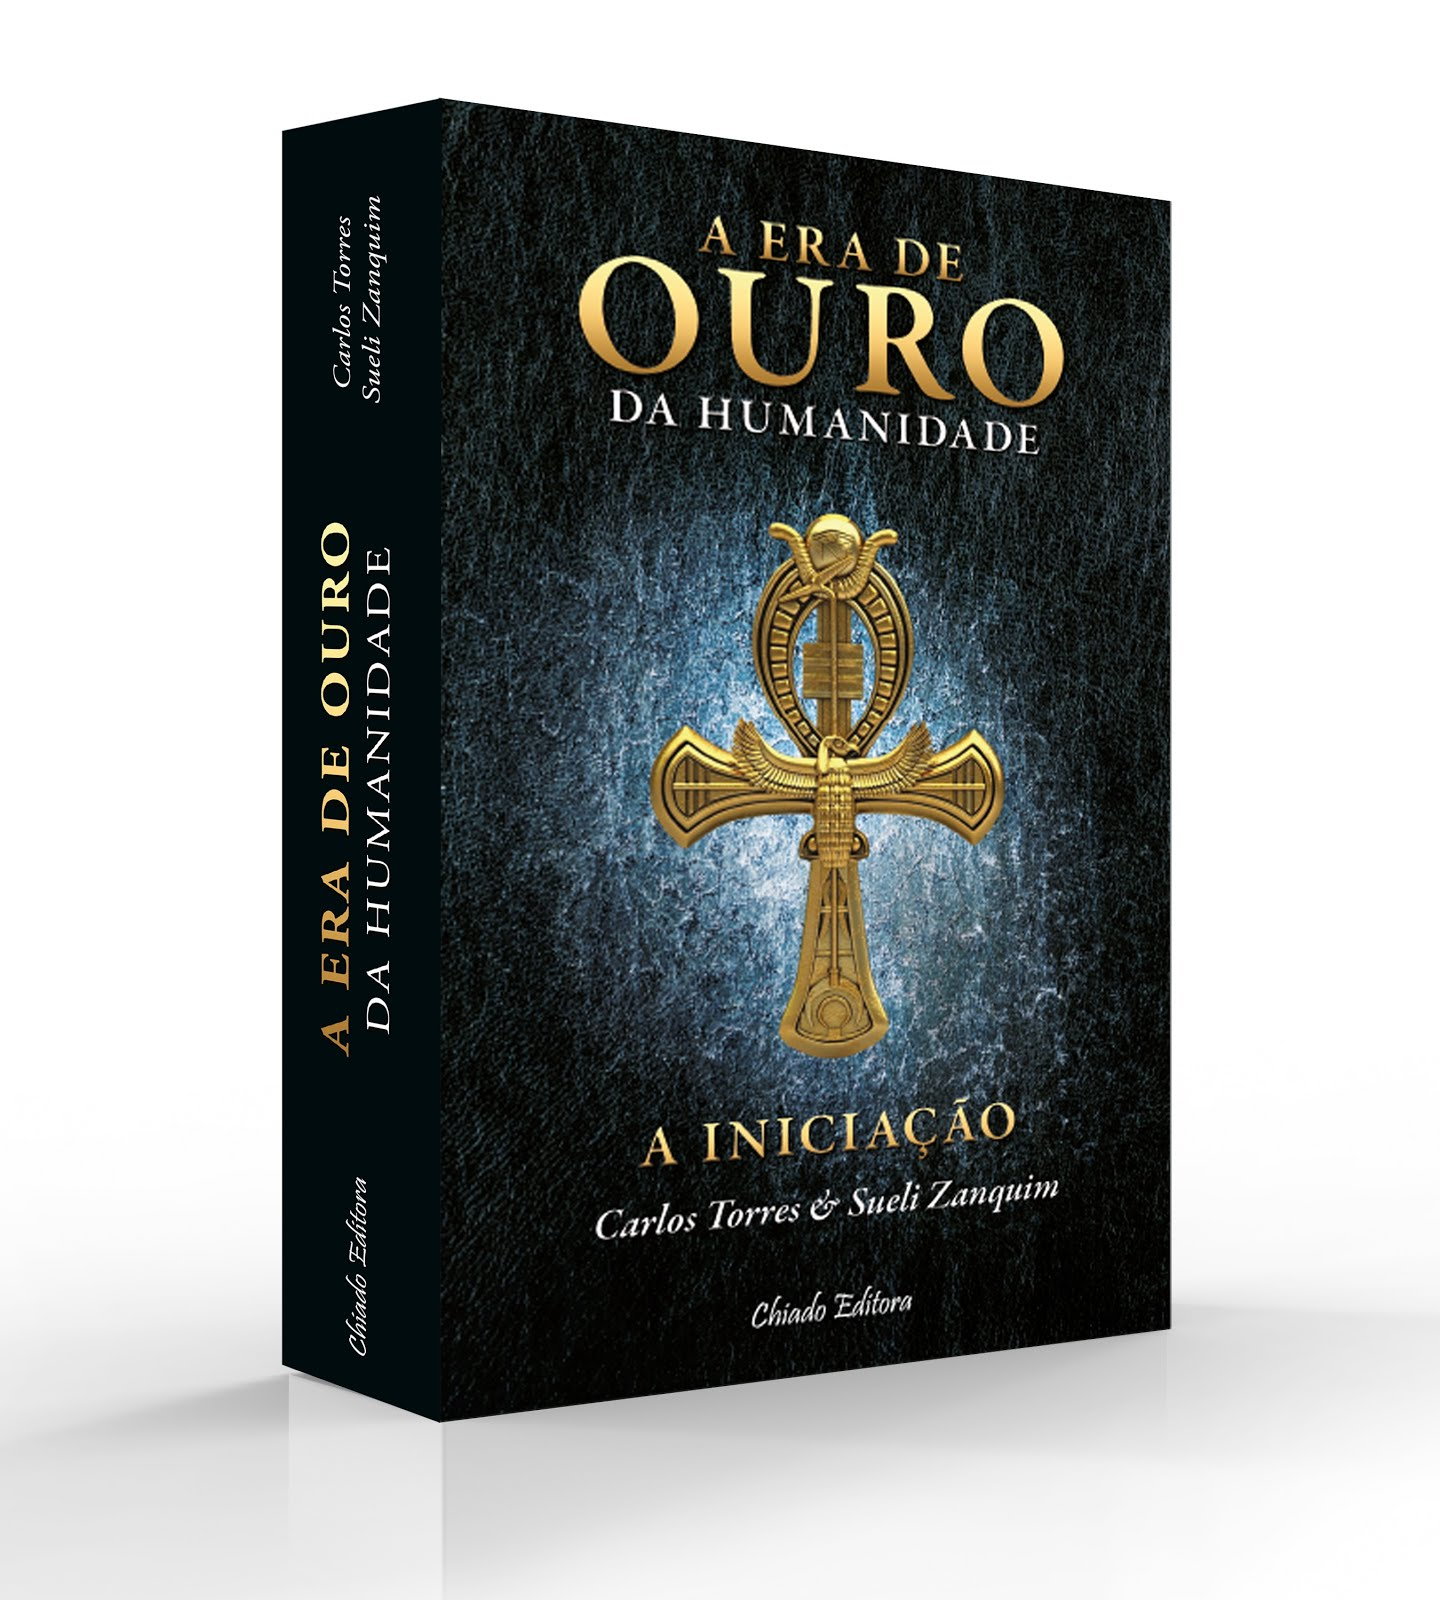 A Era de Ouro da Humanidade - Best Seller